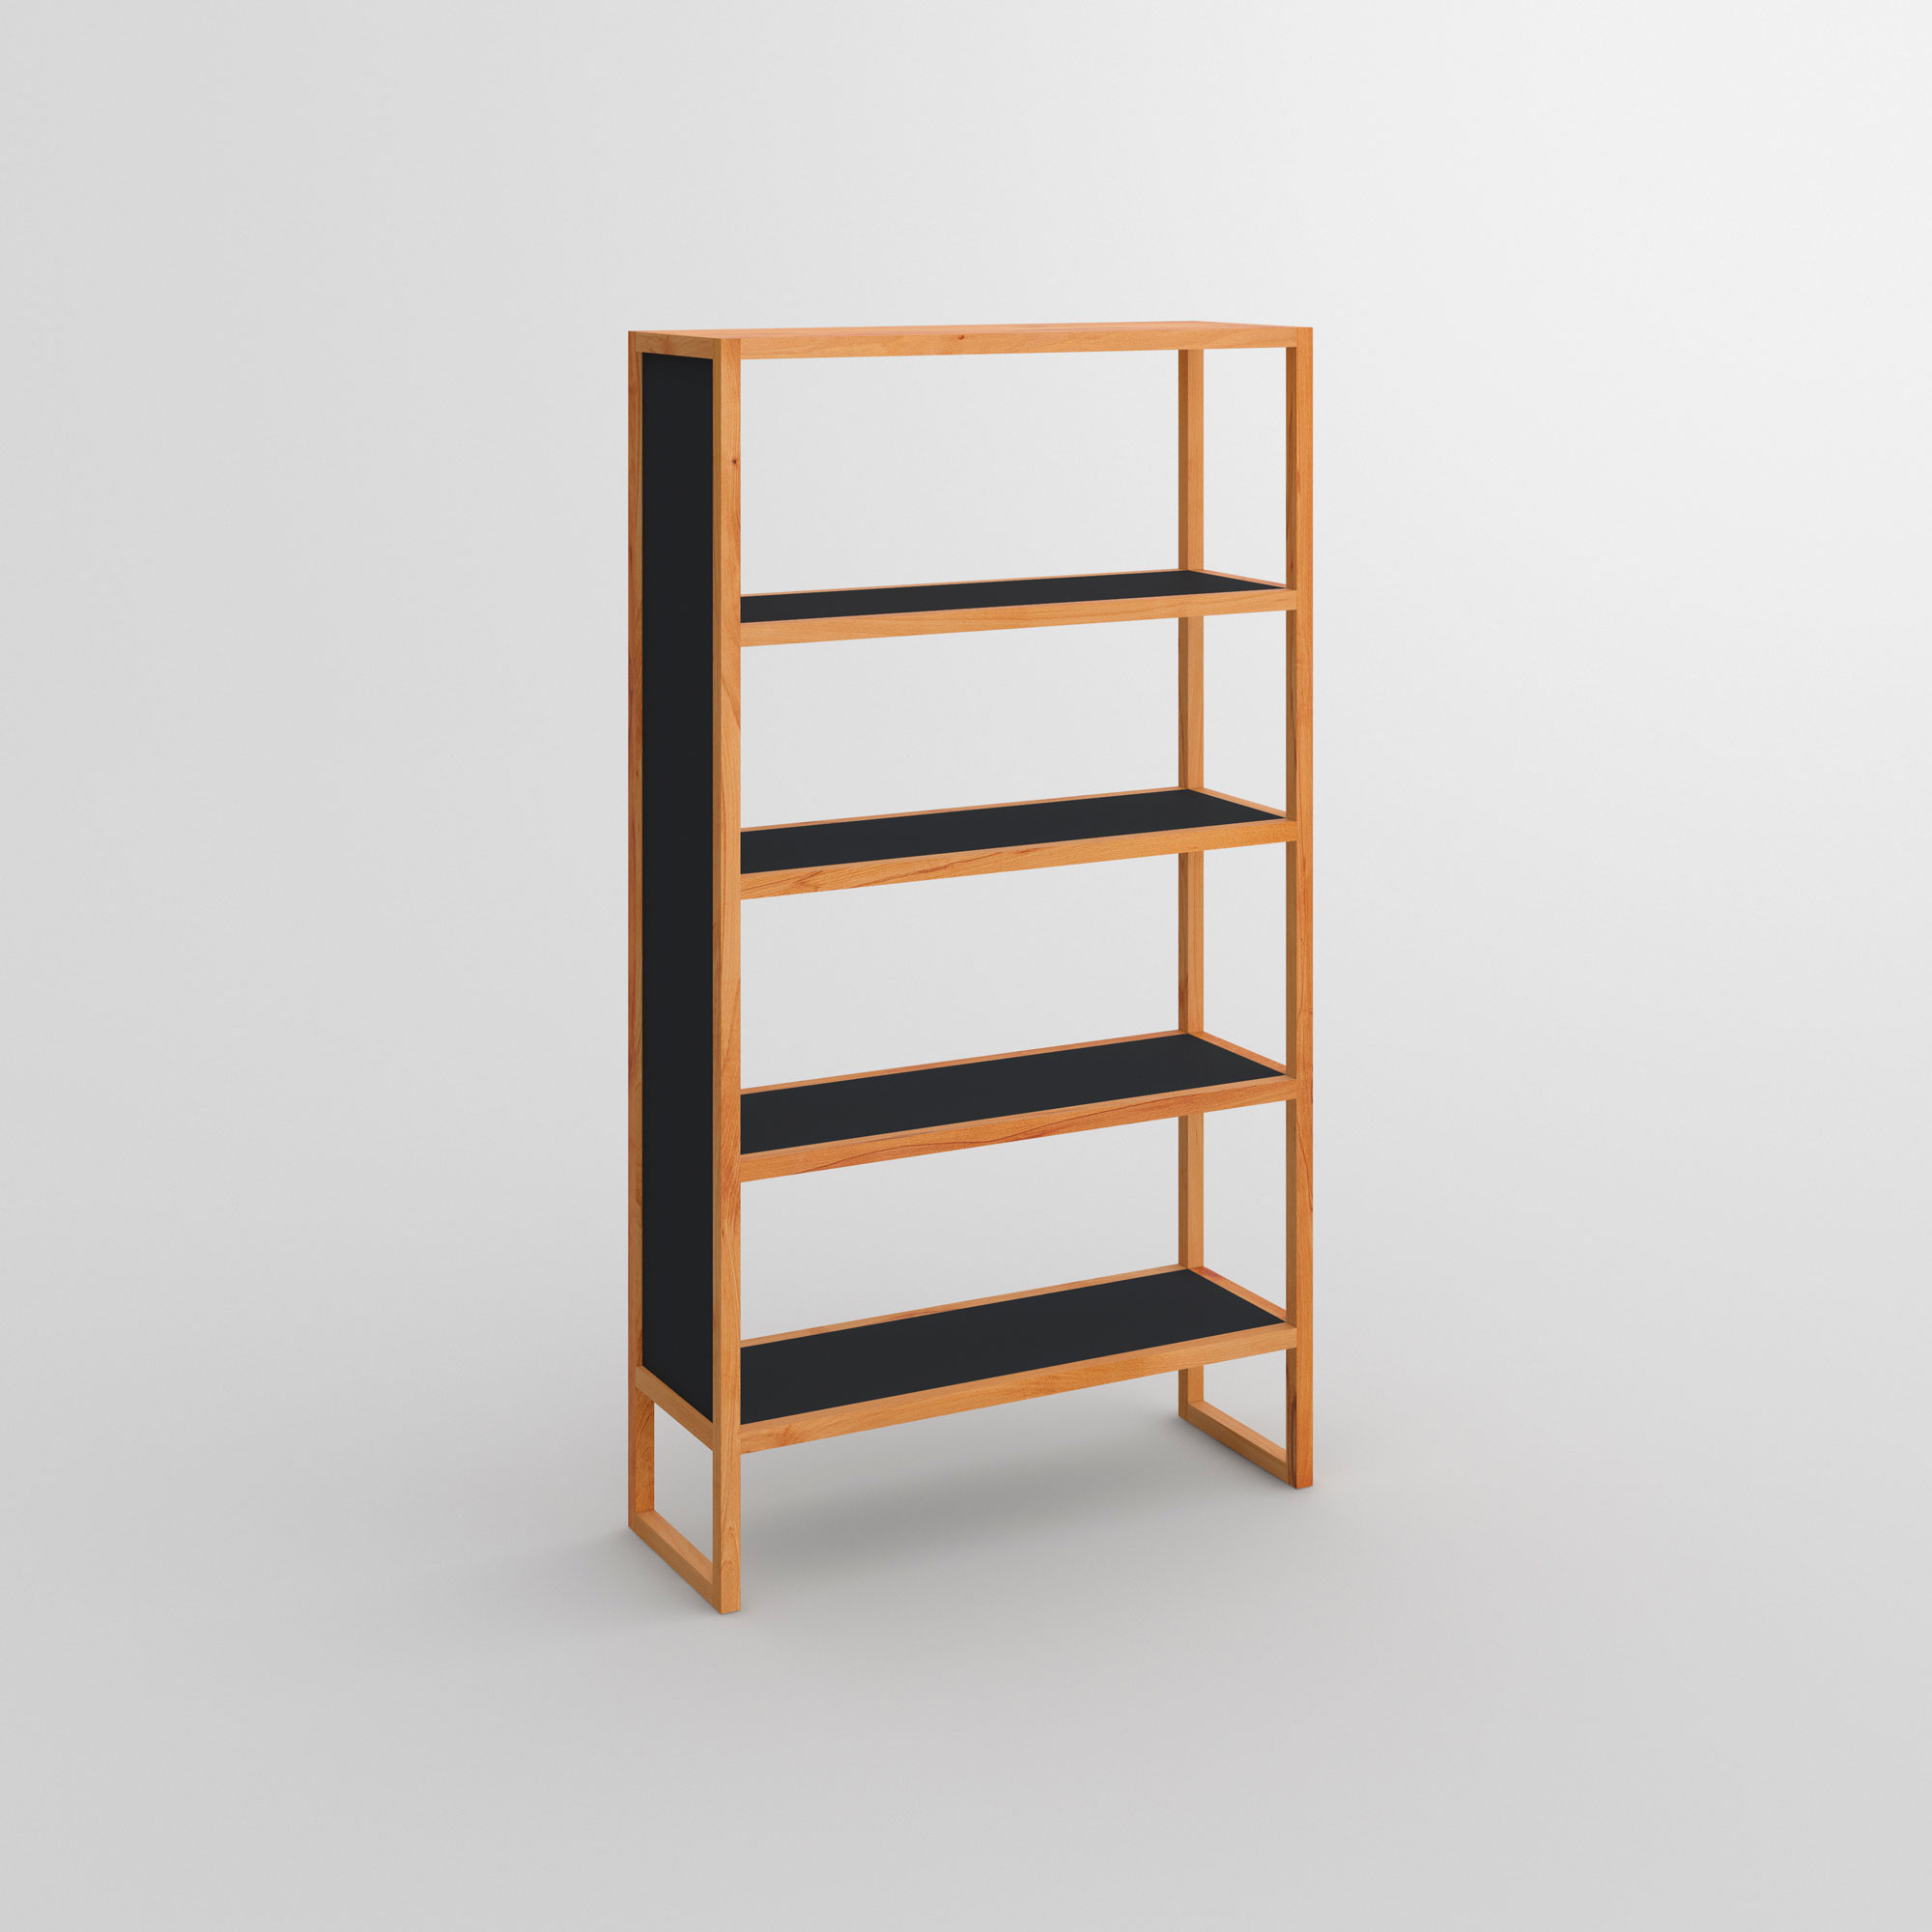 Linoleum Wood Shelf SENA cam1 custom made in solid wood by vitamin design